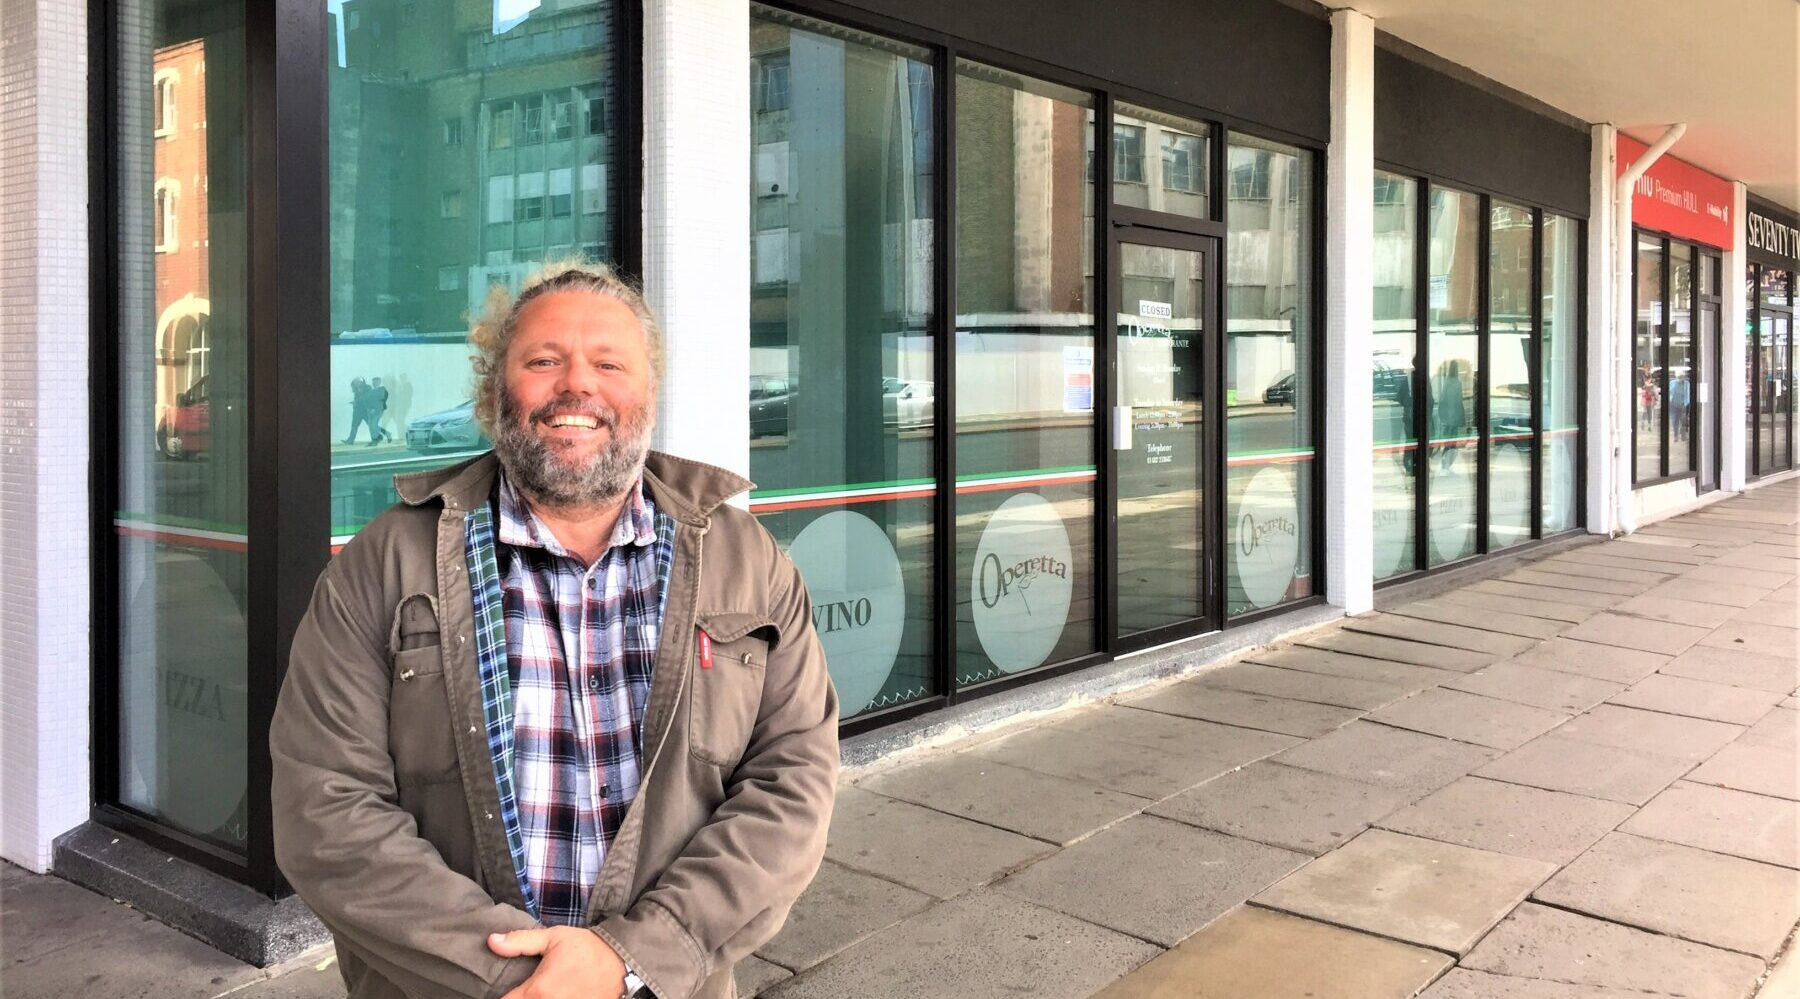 Yiannis Makris outside the former Operetta which will now become the new Artemis Greek Taverna on Bond Street, Hull.